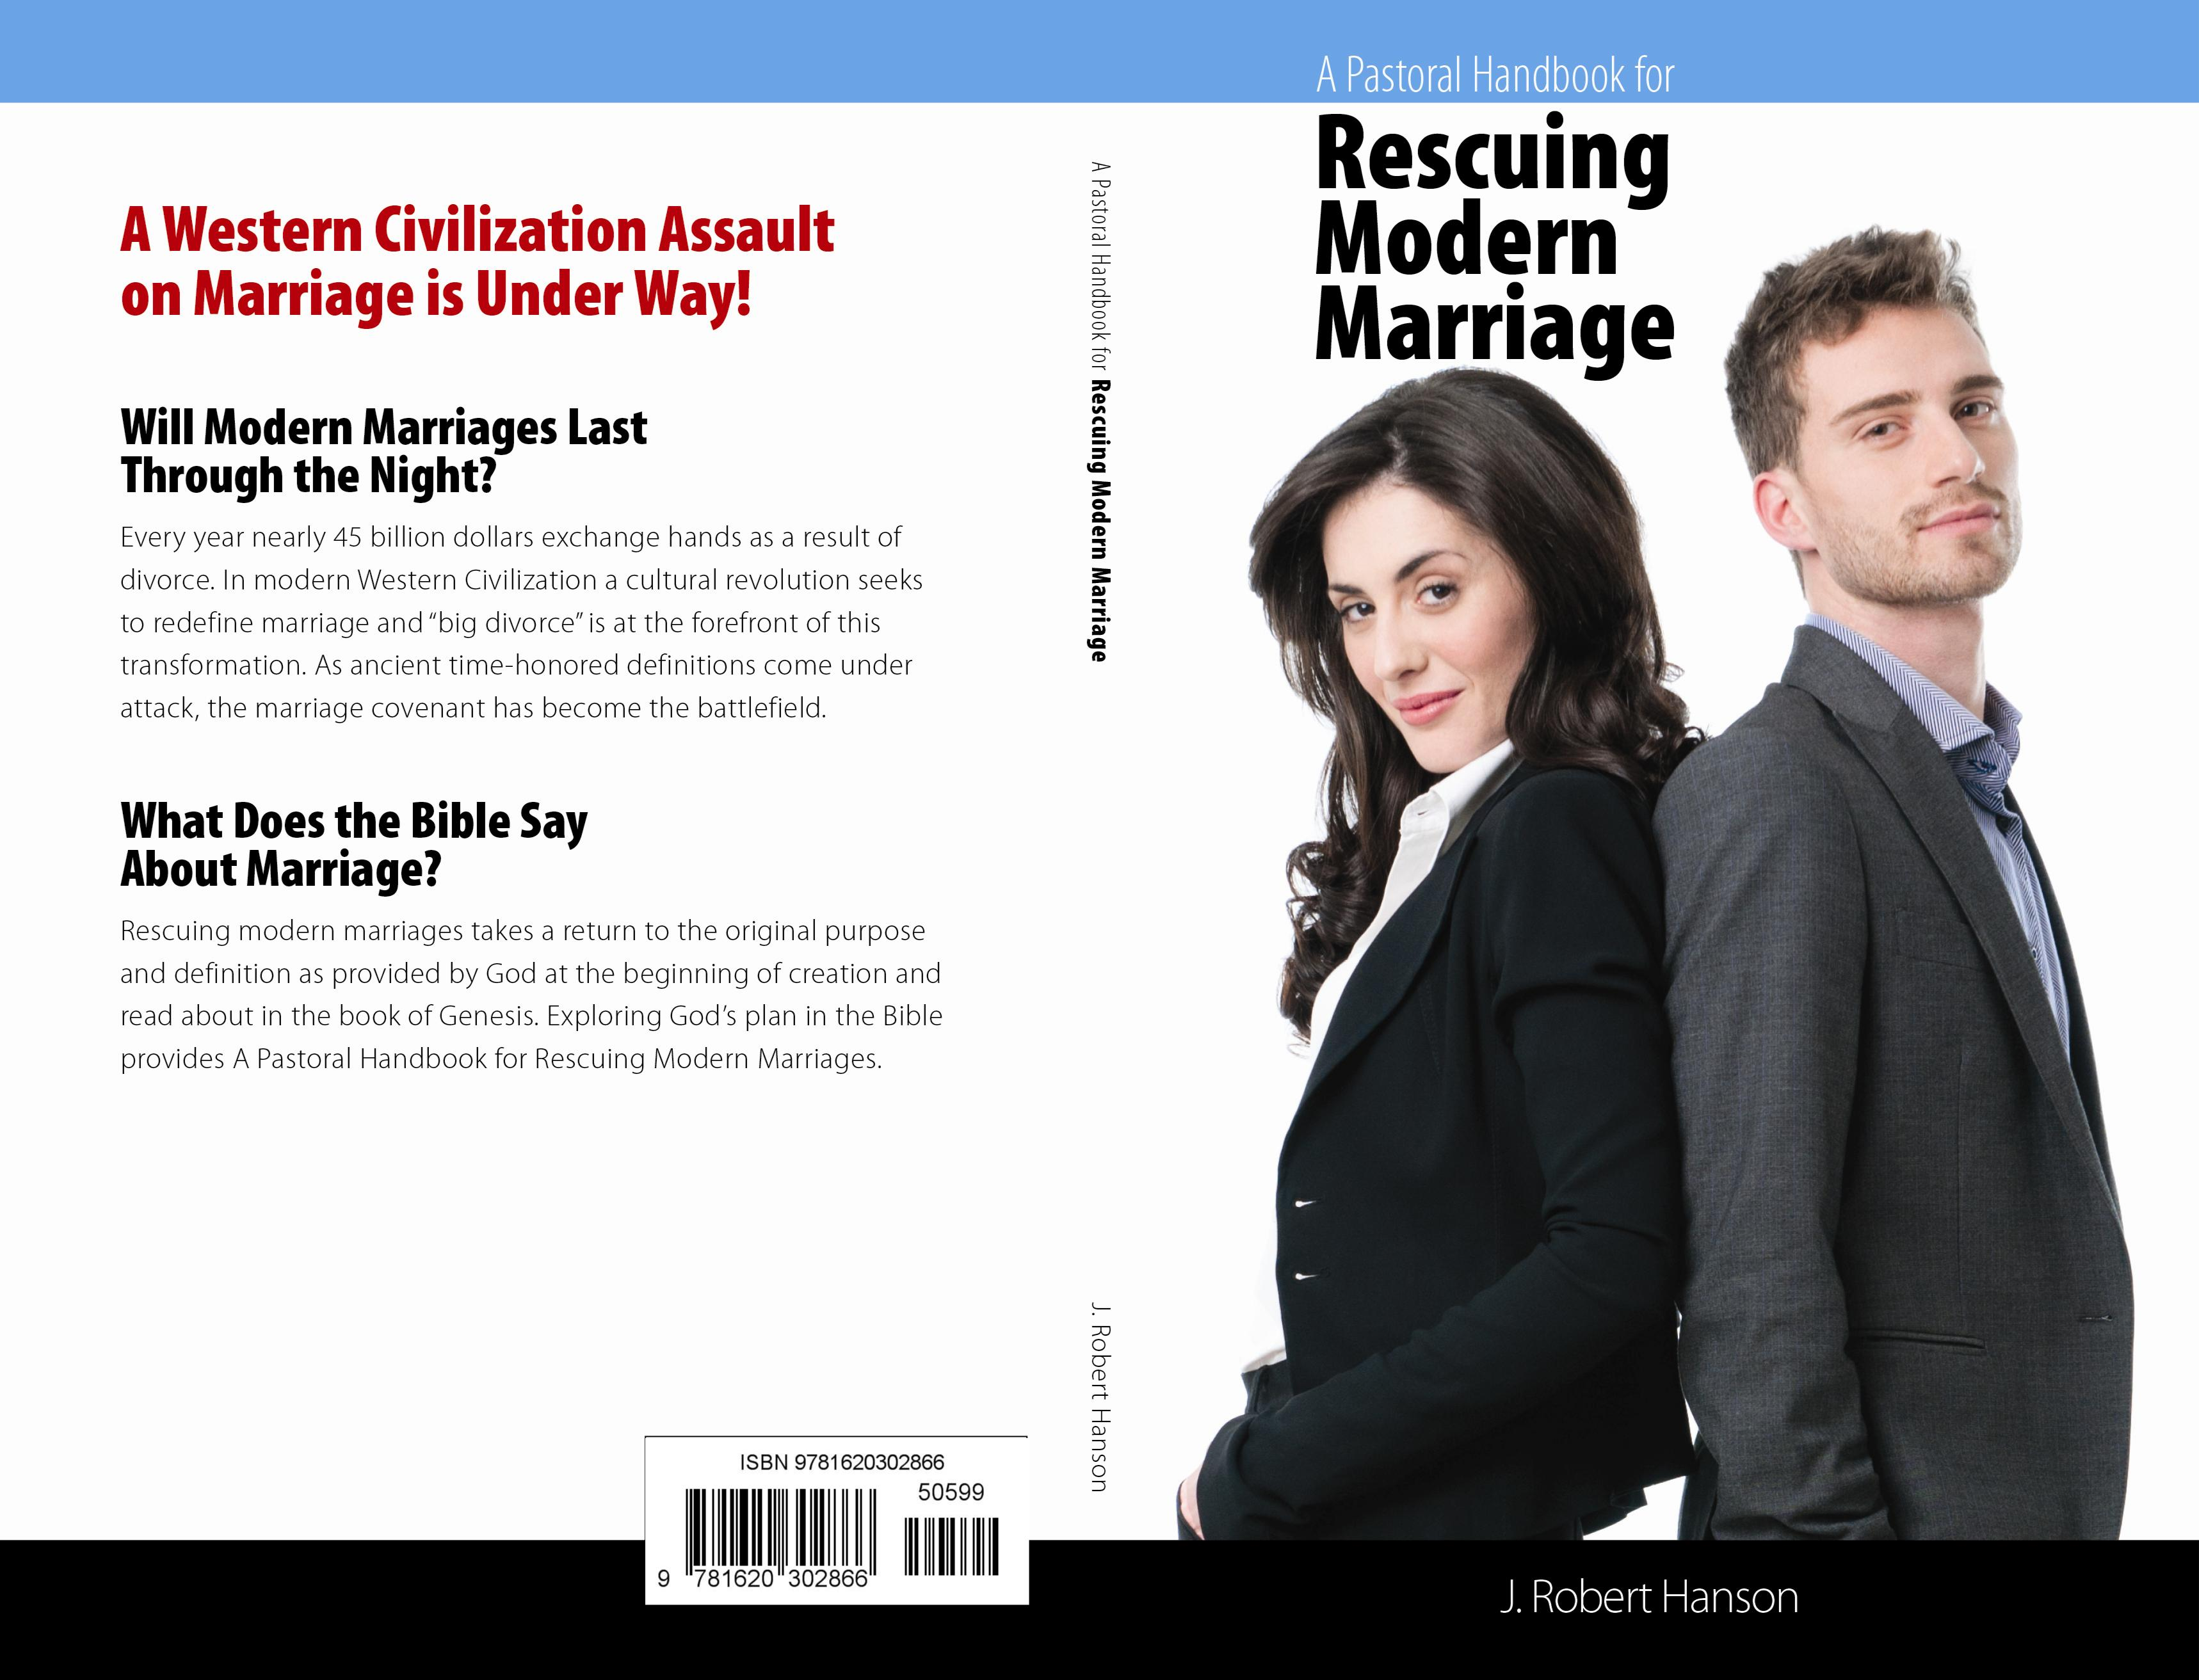 A Pastoral Handbook for Rescuing Modern Marriage cover image